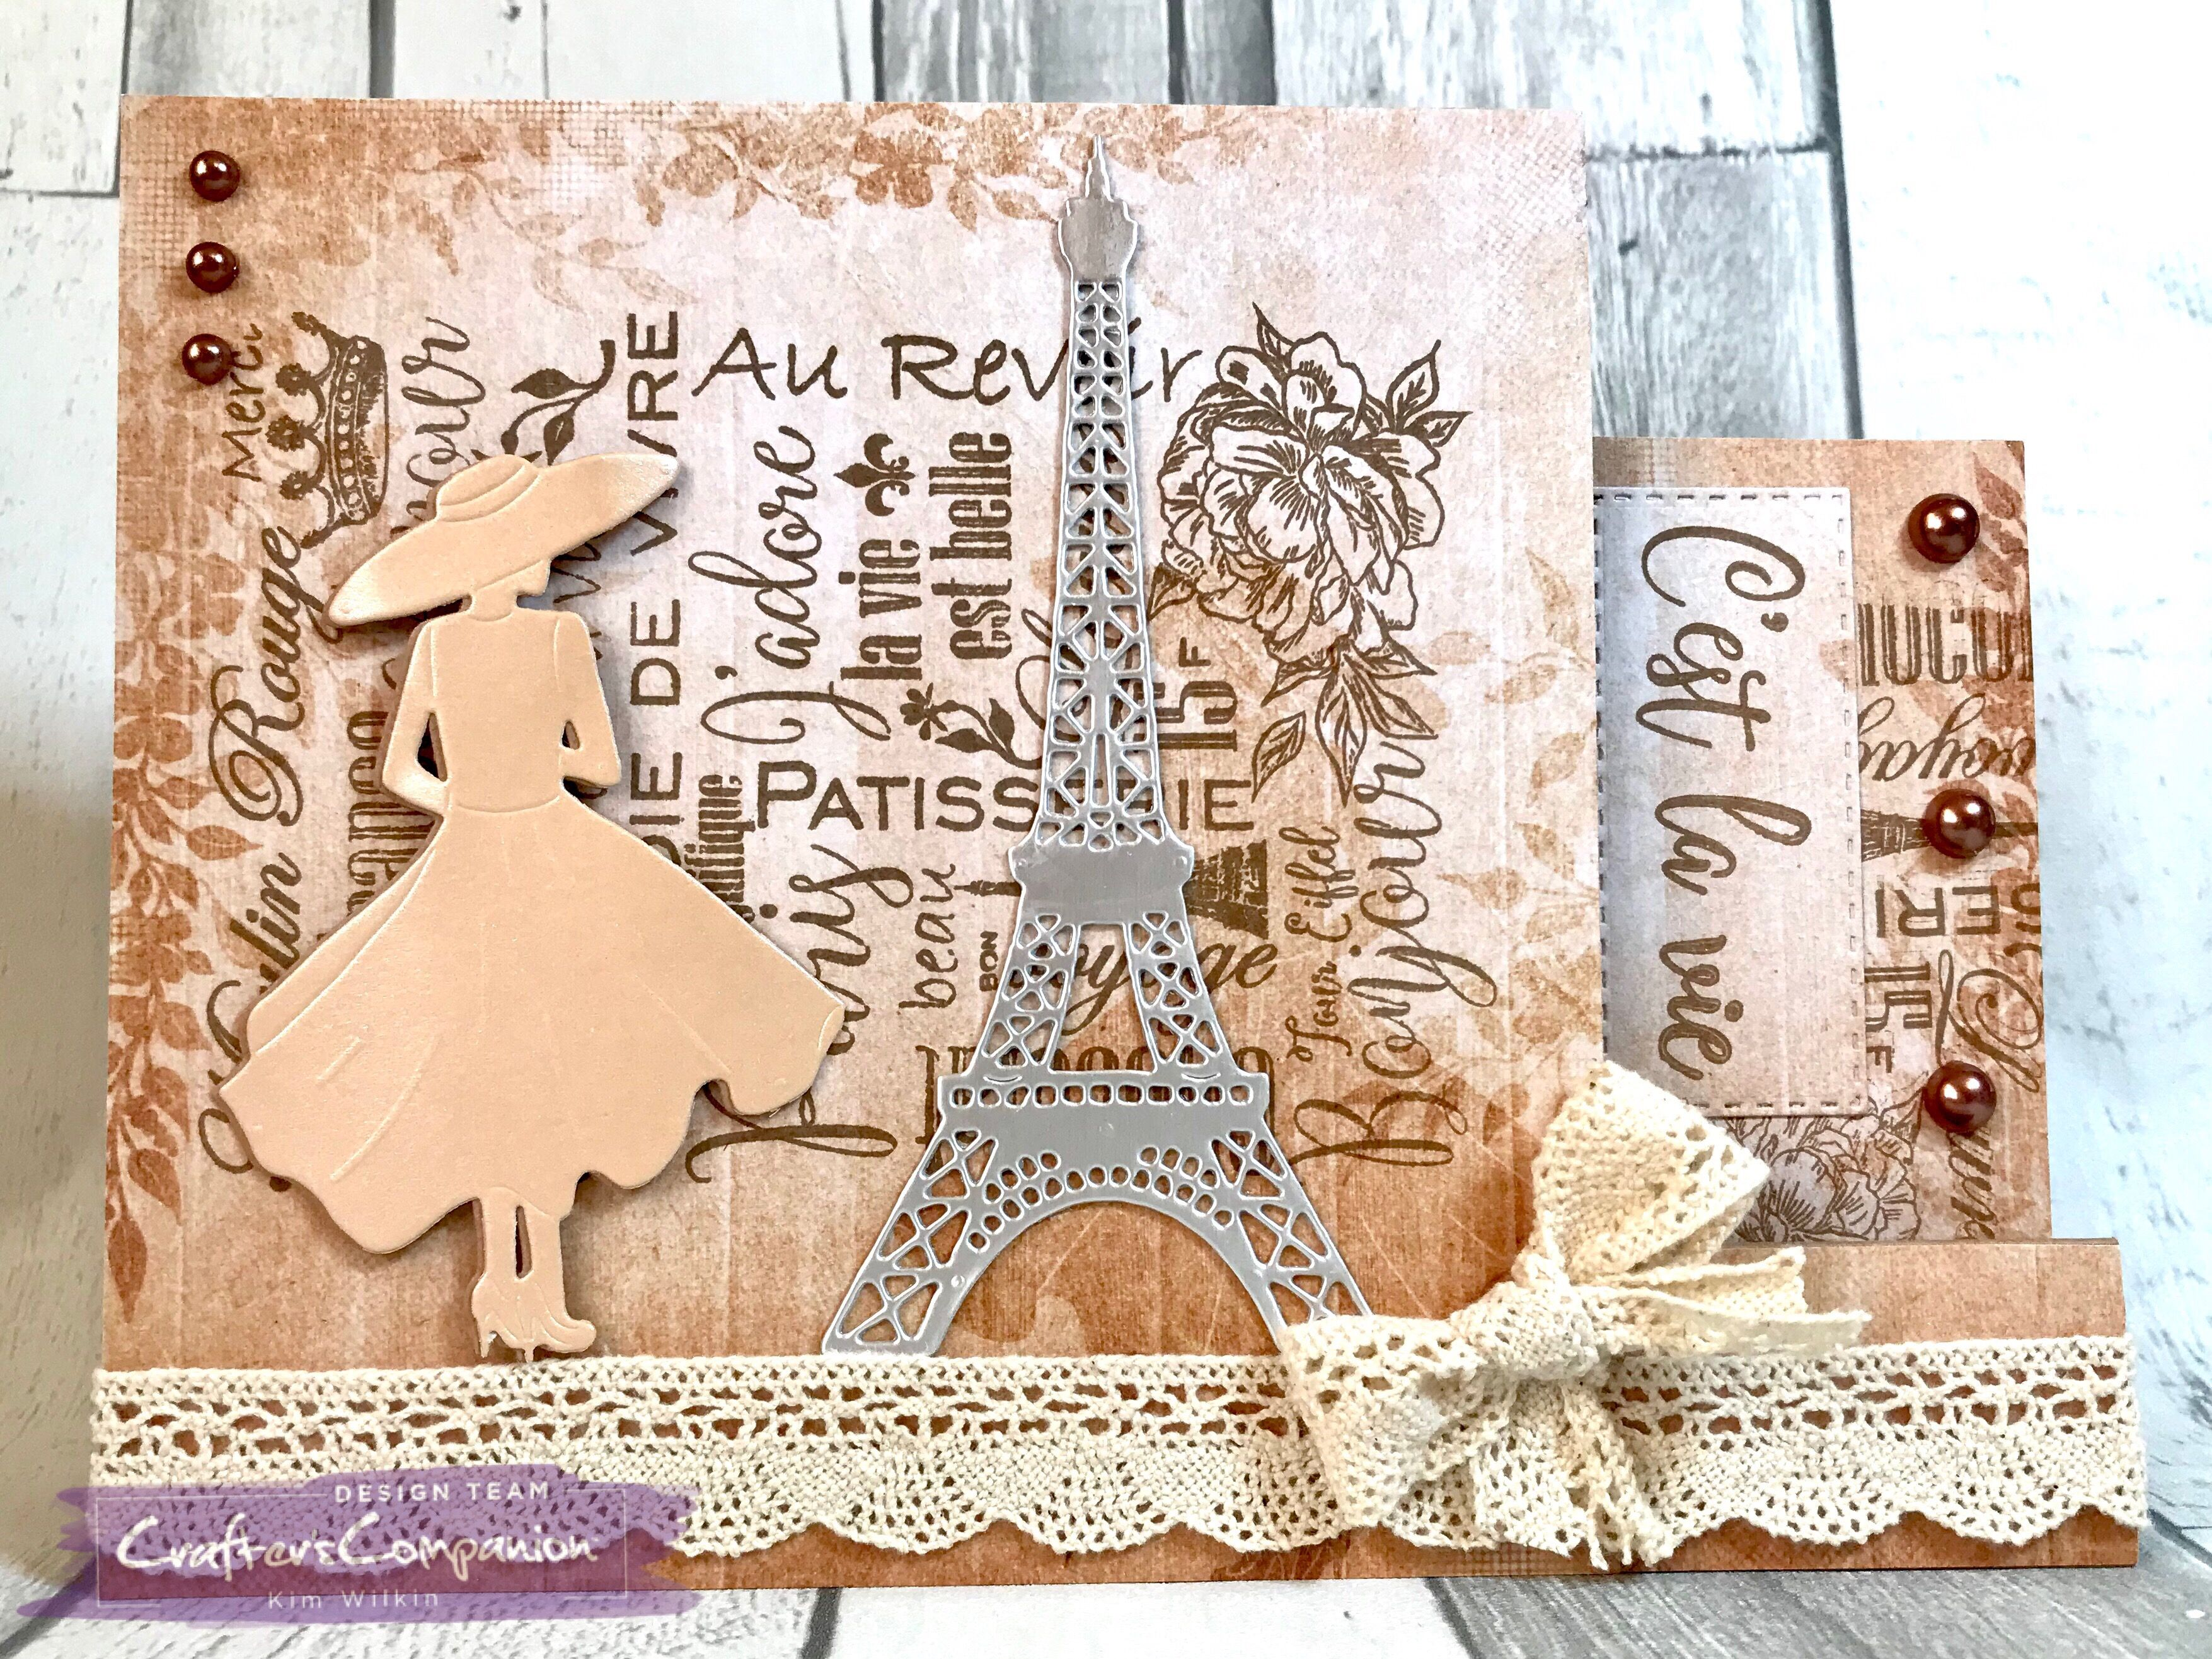 Metal Die Roseraie Sara Davies Parisian Signature Craft Collection